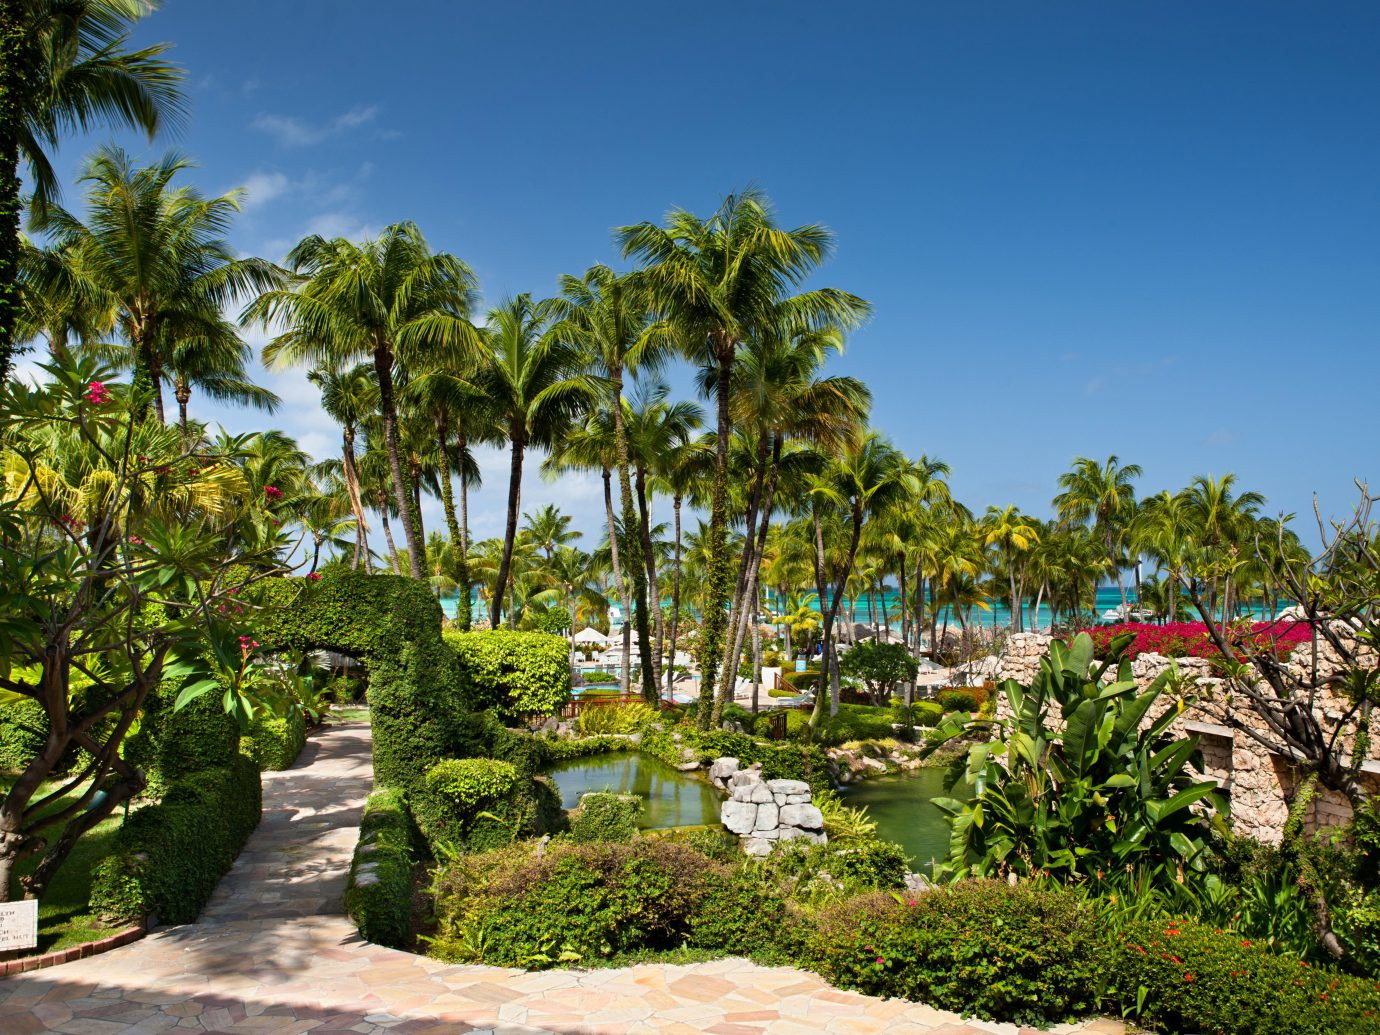 Aruba Beachfront caribbean Casino Classic Grounds Hotels Resort Tropical tree outdoor sky flora ecosystem botany plant Garden arecales flower tropics palm estate palm family botanical garden park Jungle lined